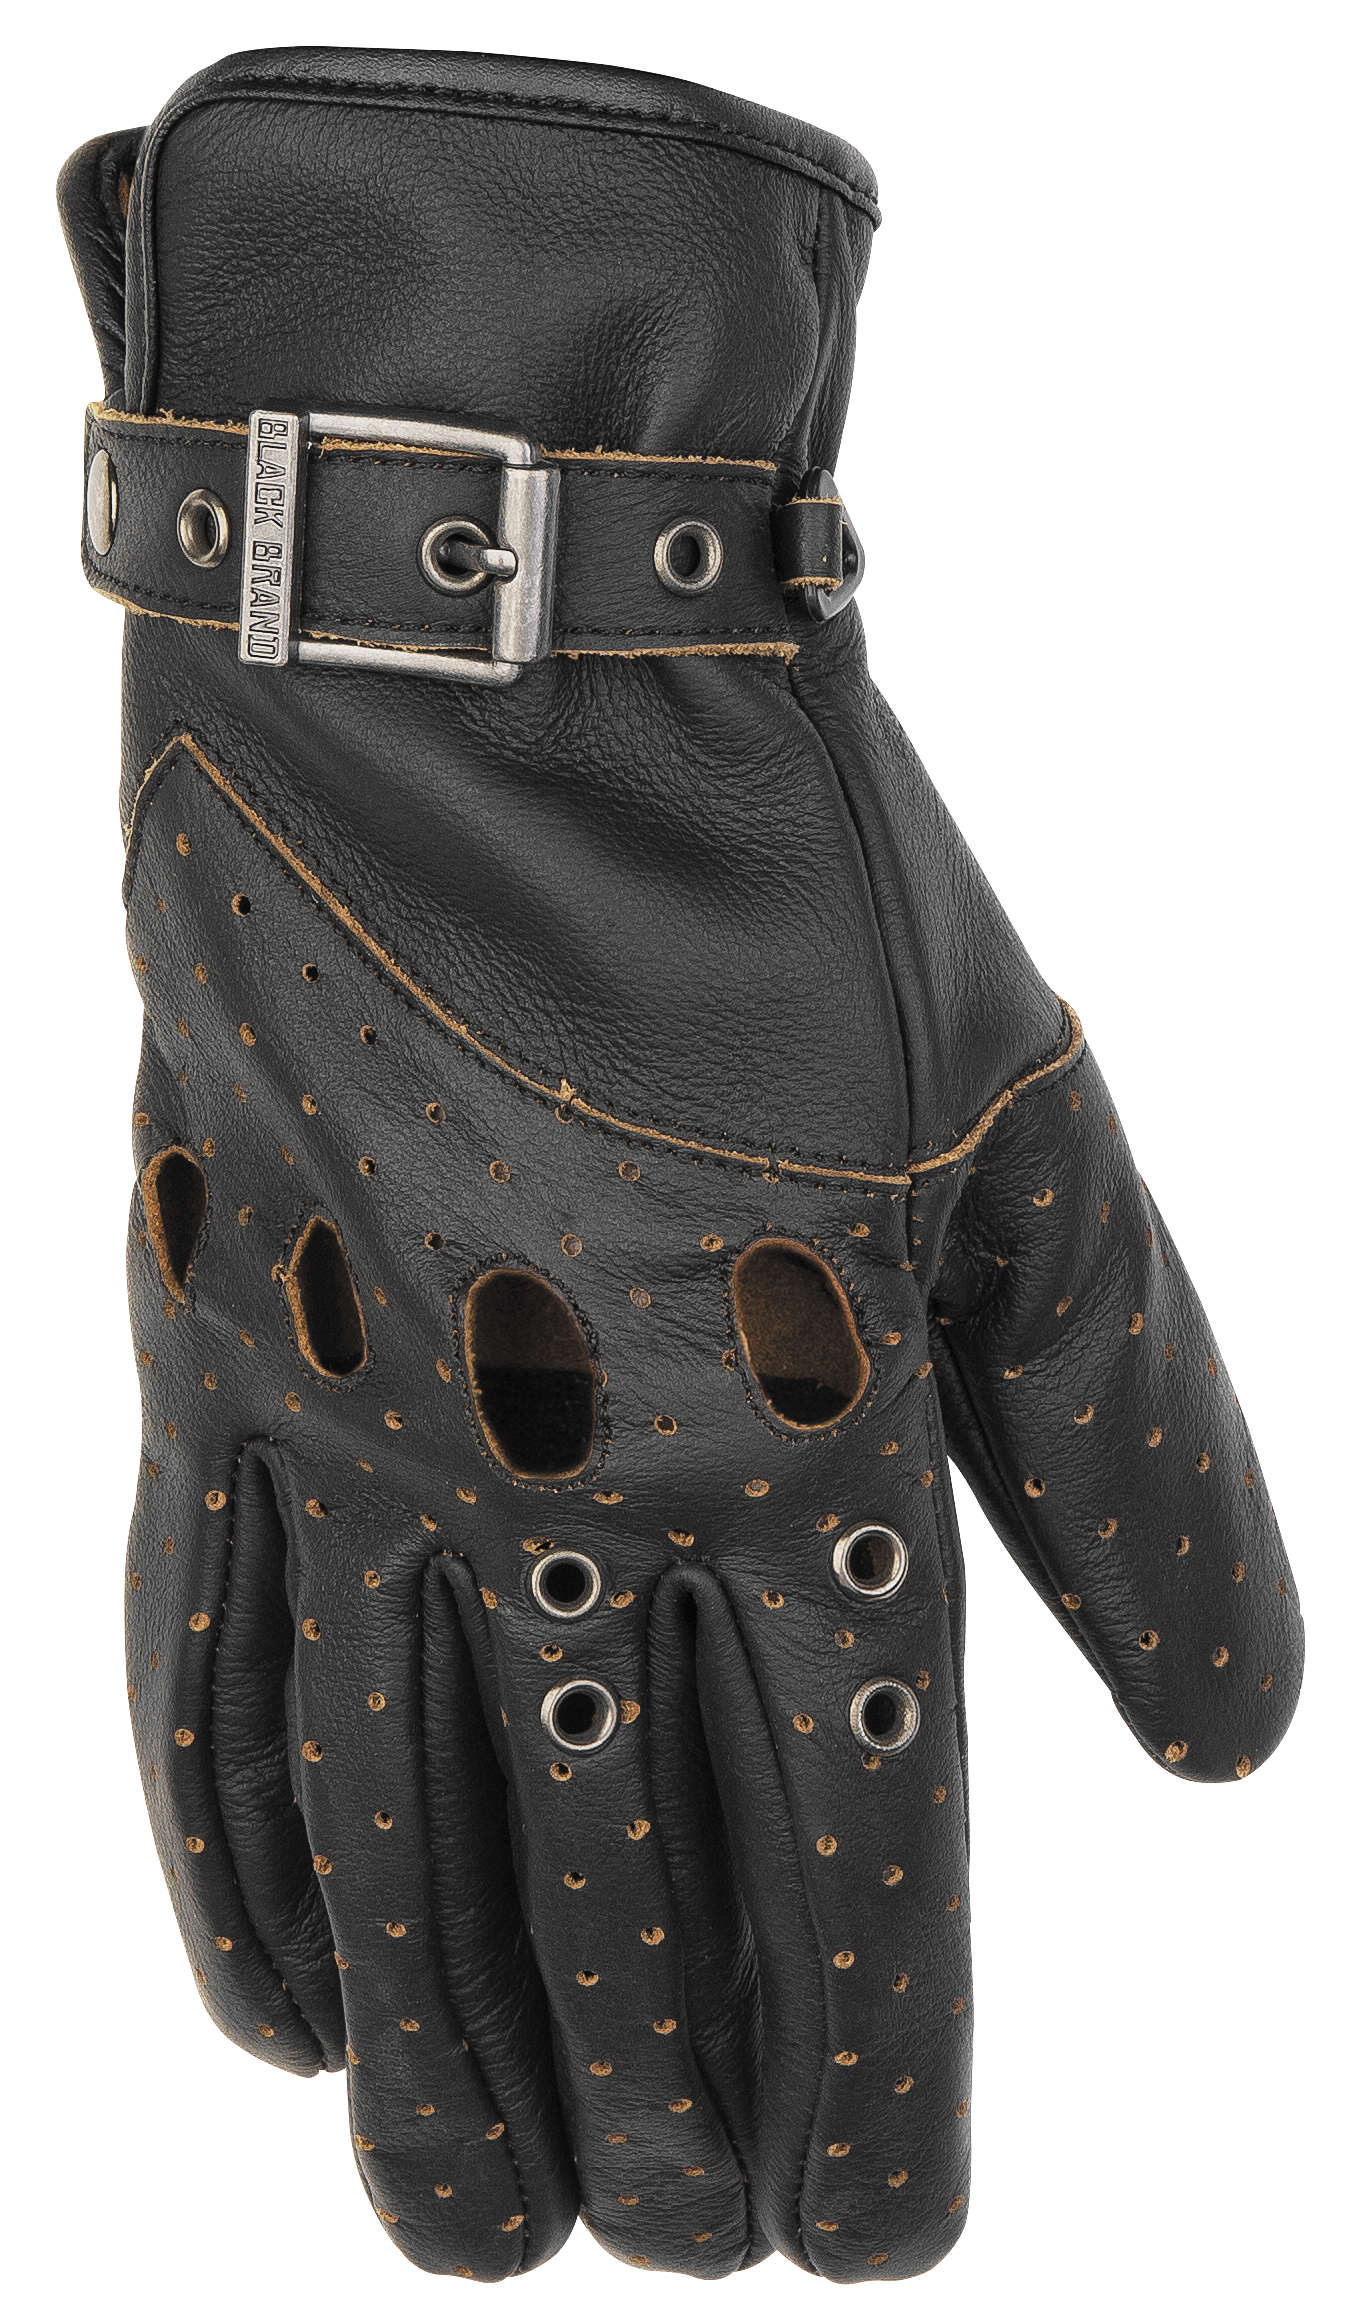 Womens leather motorcycle riding gloves - Black Brand Vintage Venom Women 039 S Motorcycle